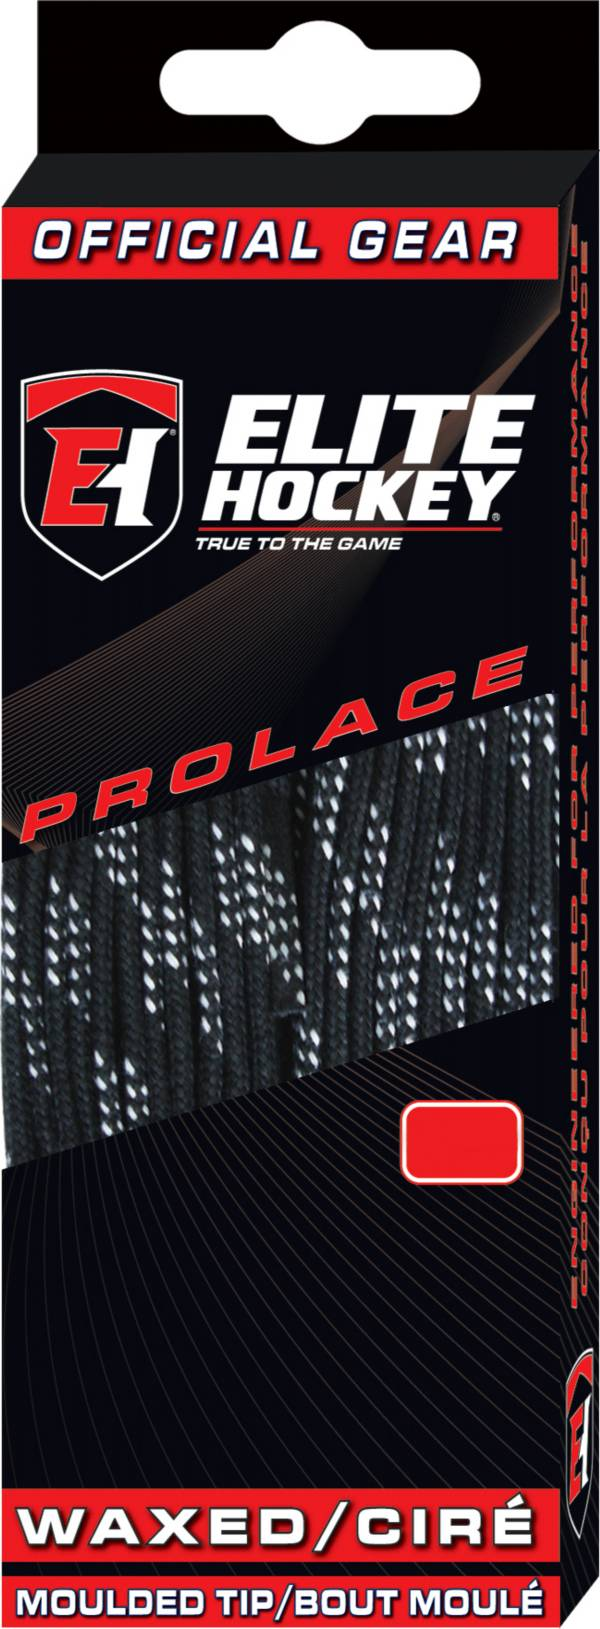 Elite Hockey Prolace Waxed Skate Laces product image